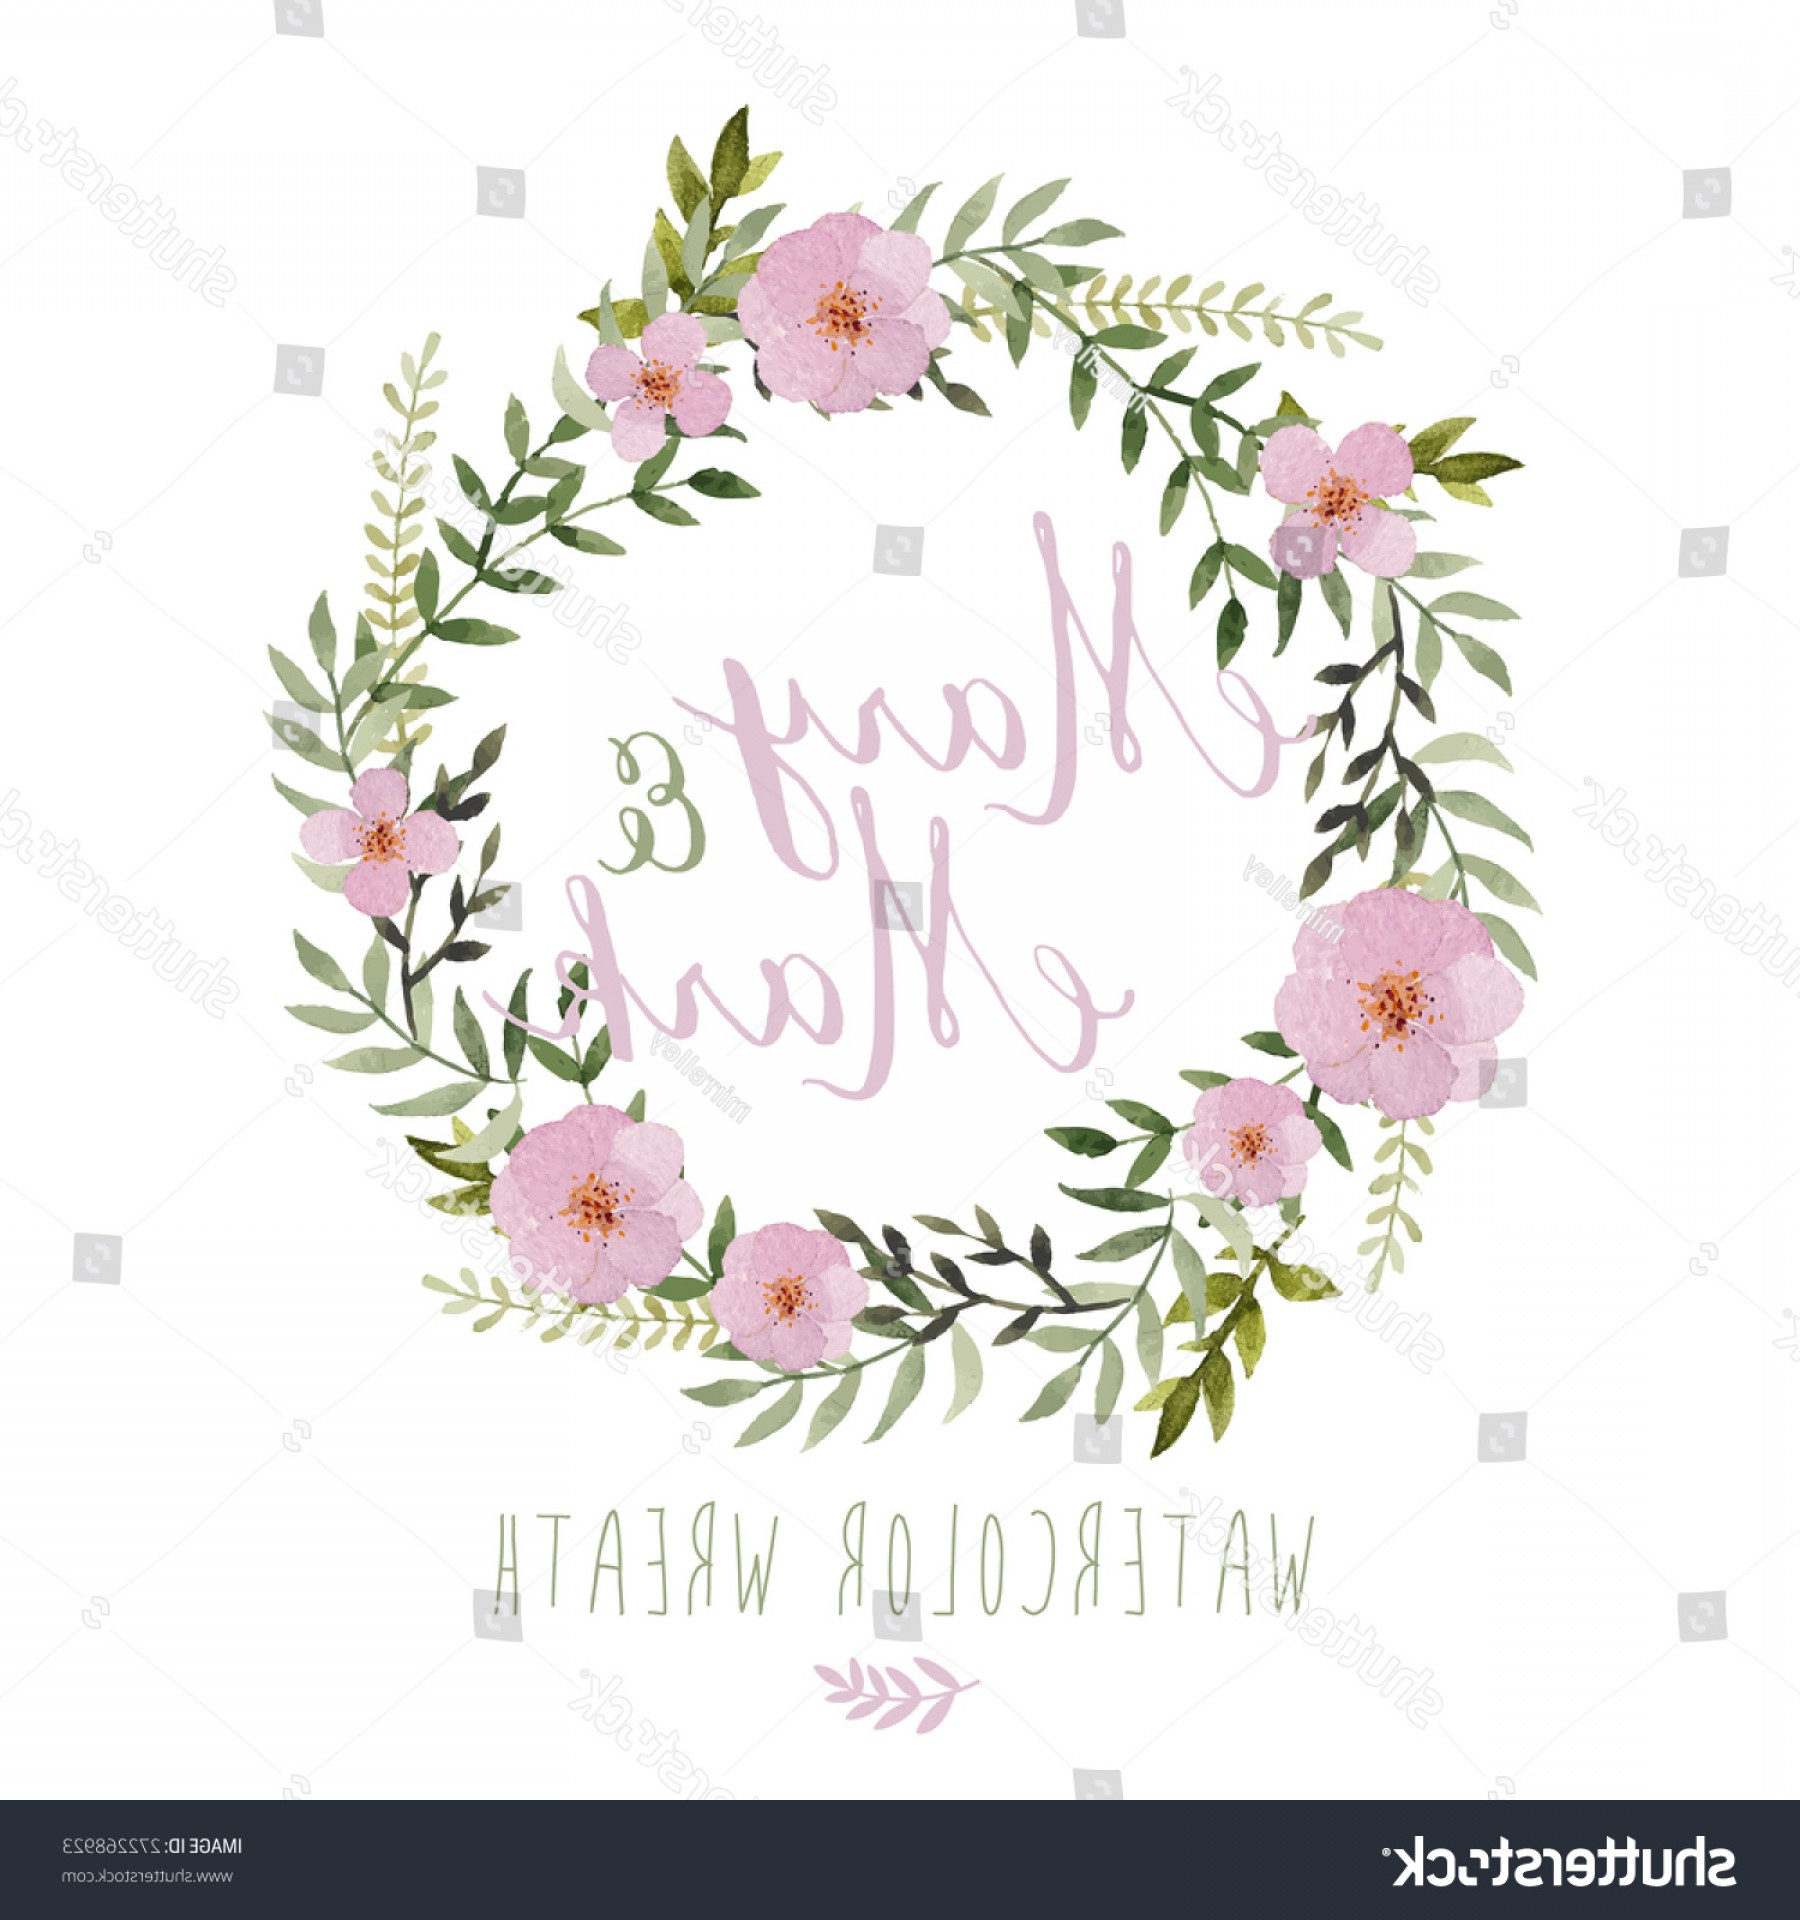 Summer Wreath Free Vector Watercolor: Vector Watercolor Colorful Circular Floral Wreaths